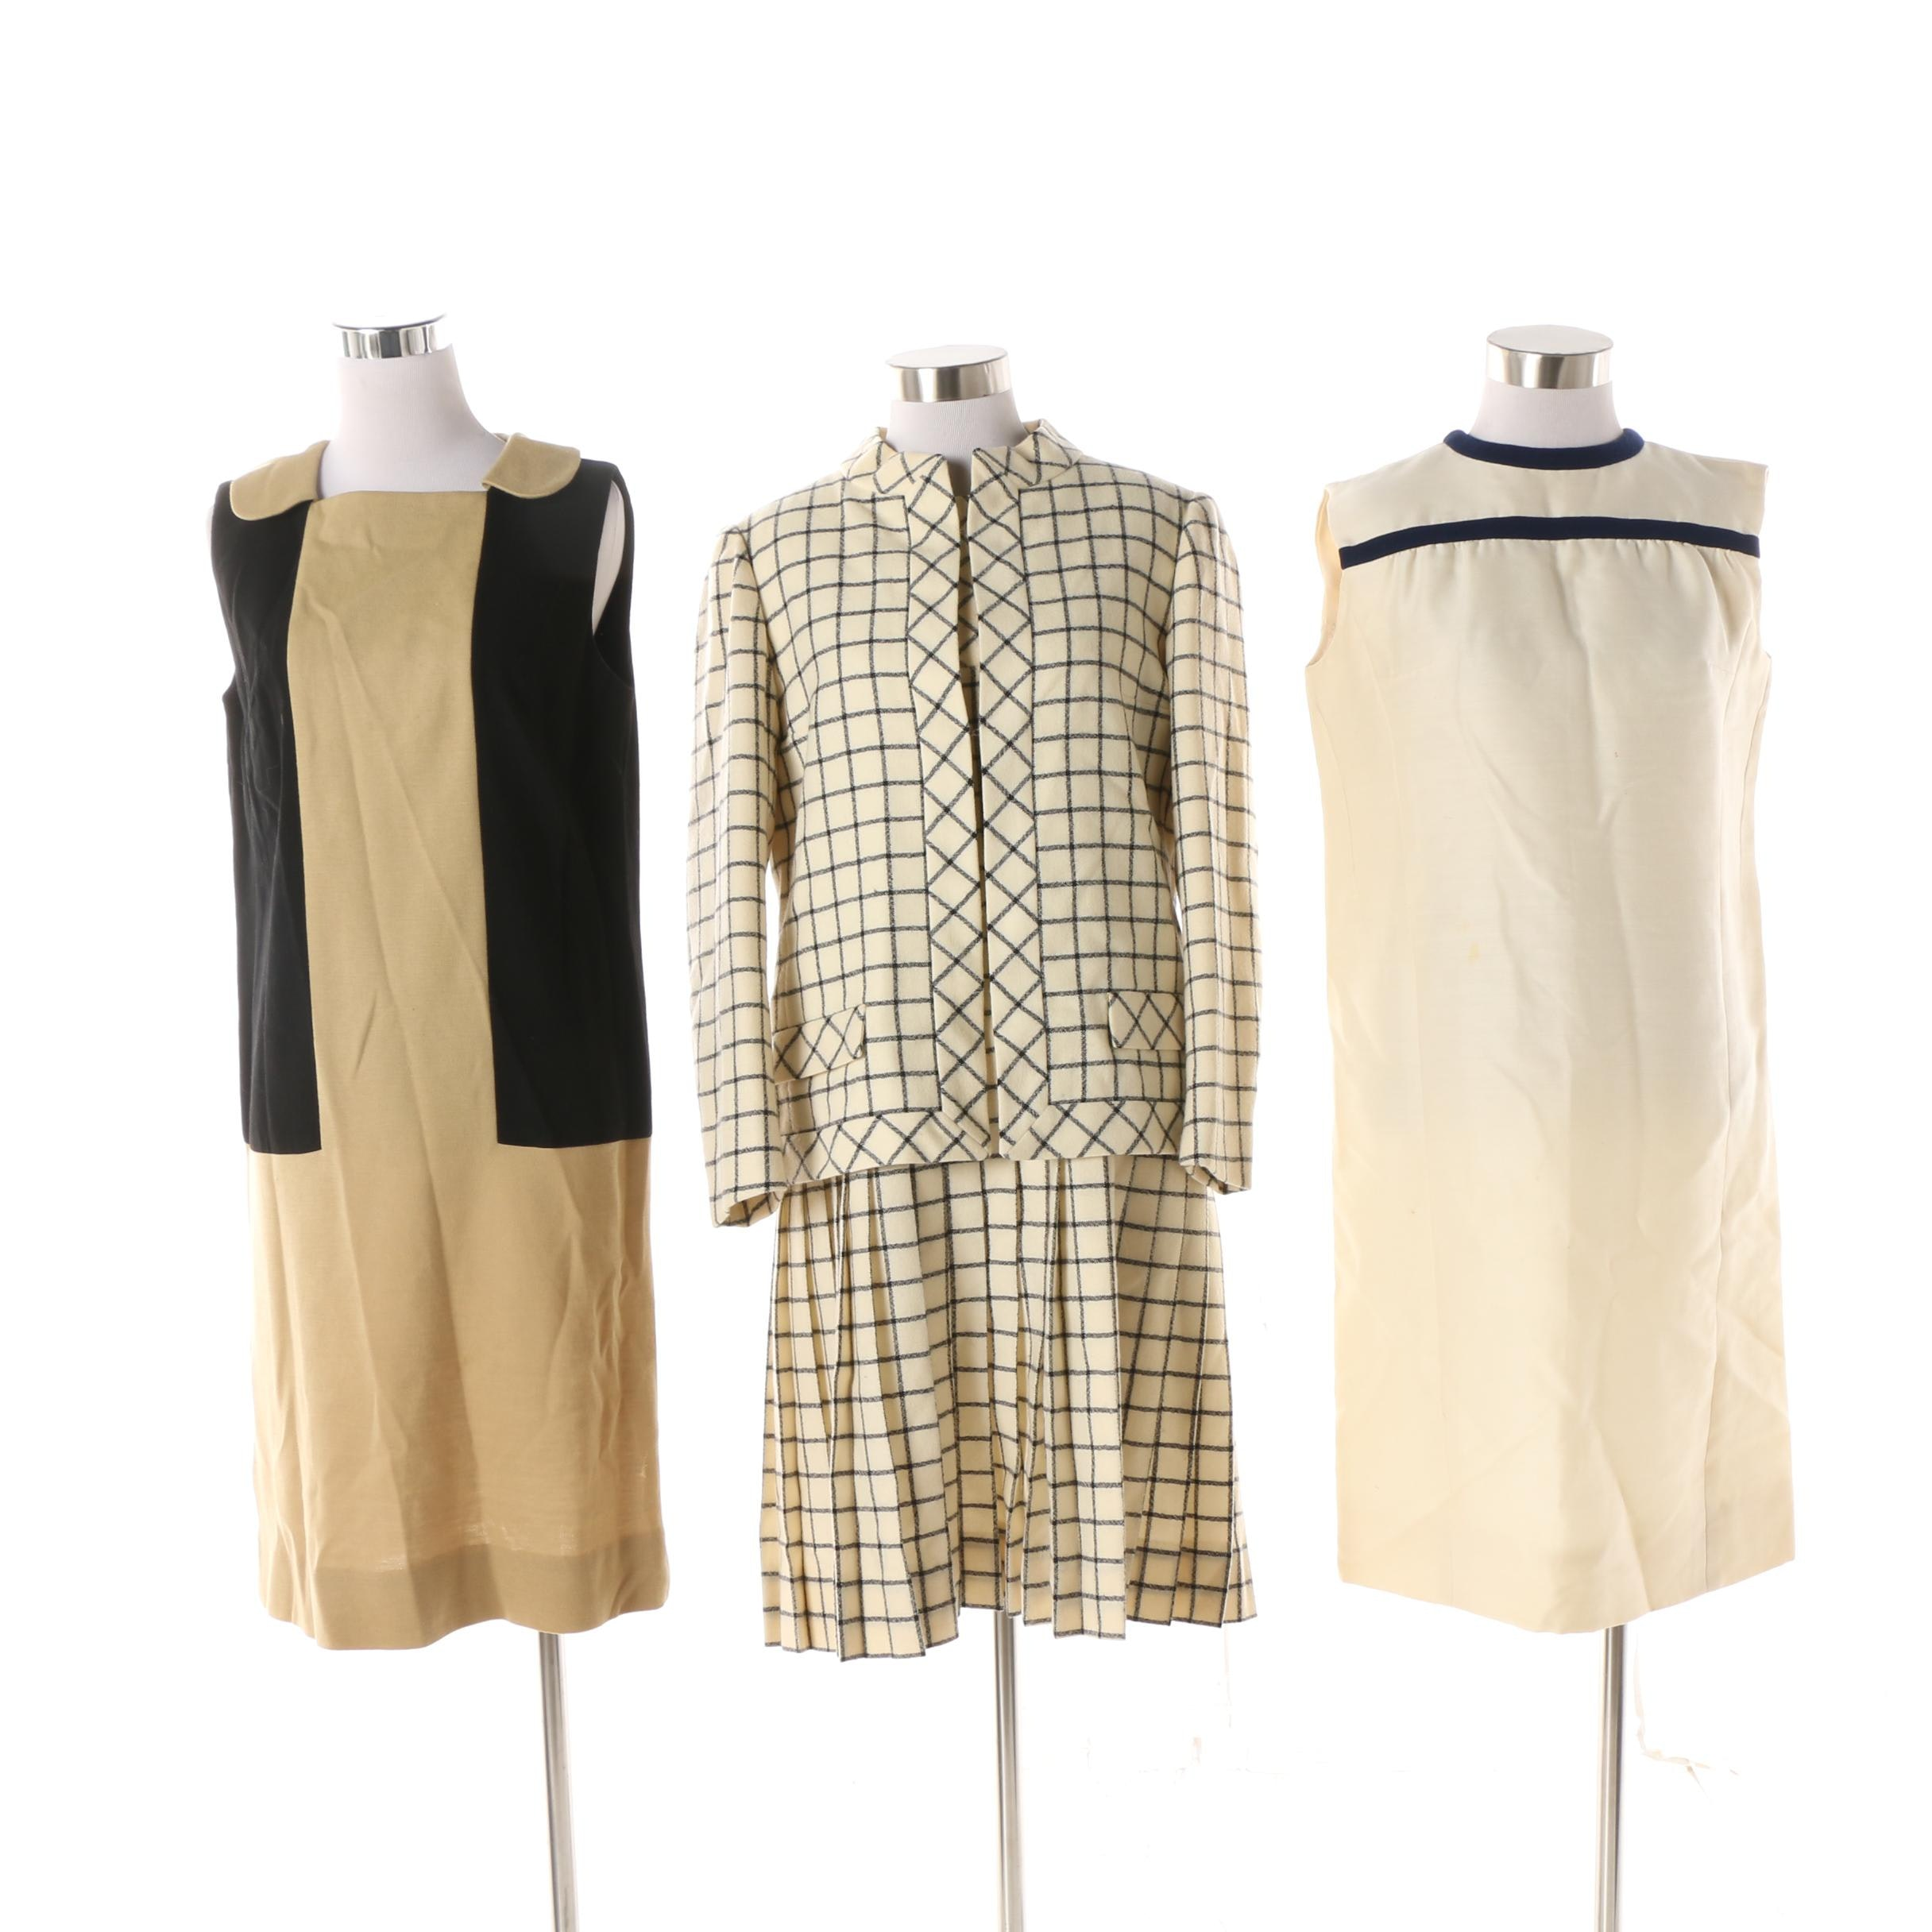 Circa 1960s Sleeveless Shift Dresses and Dress Suit